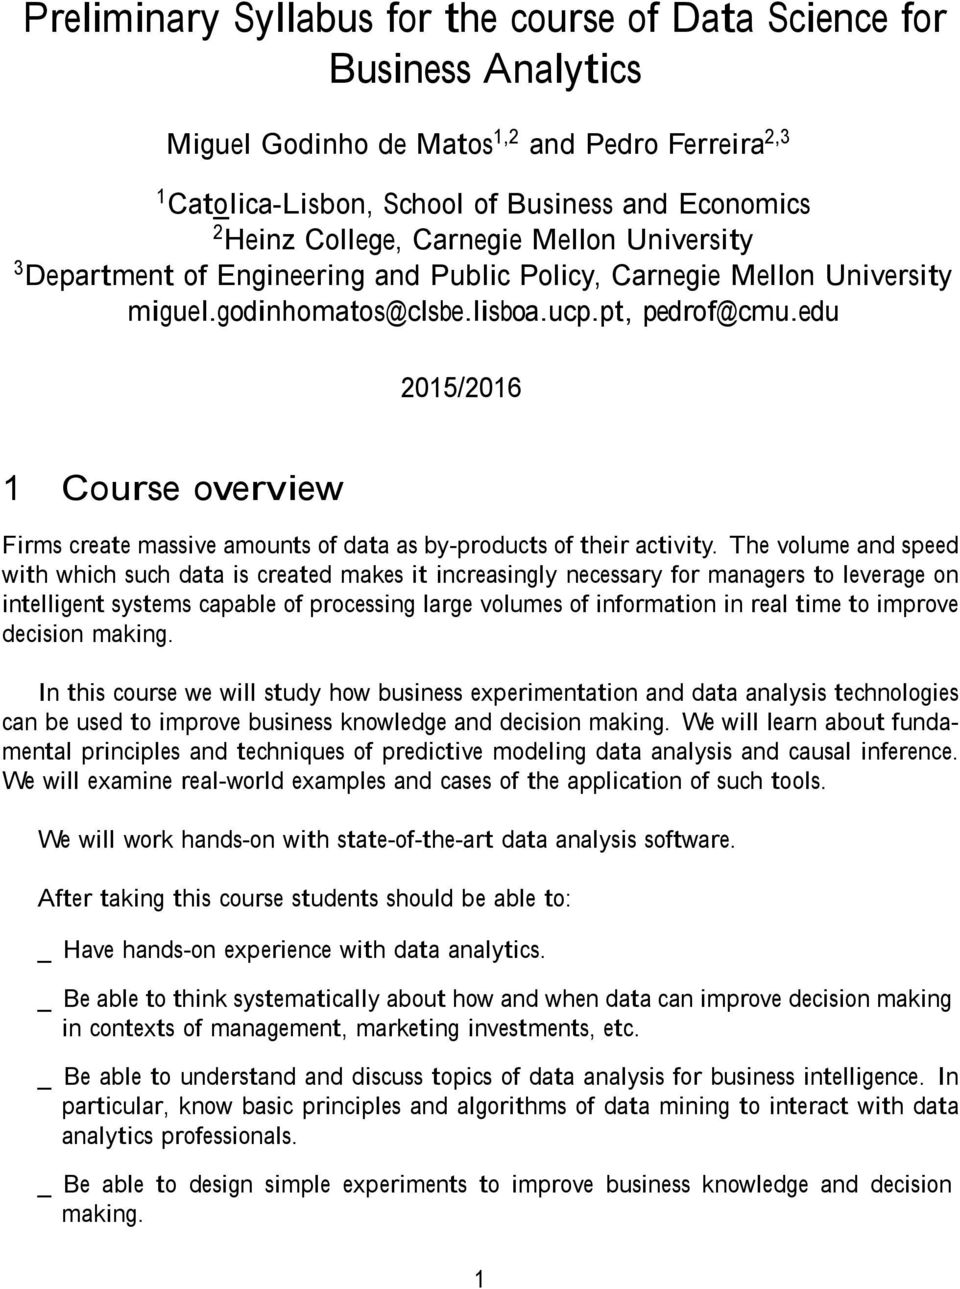 Preliminary Syllabus for the course of Data Science for